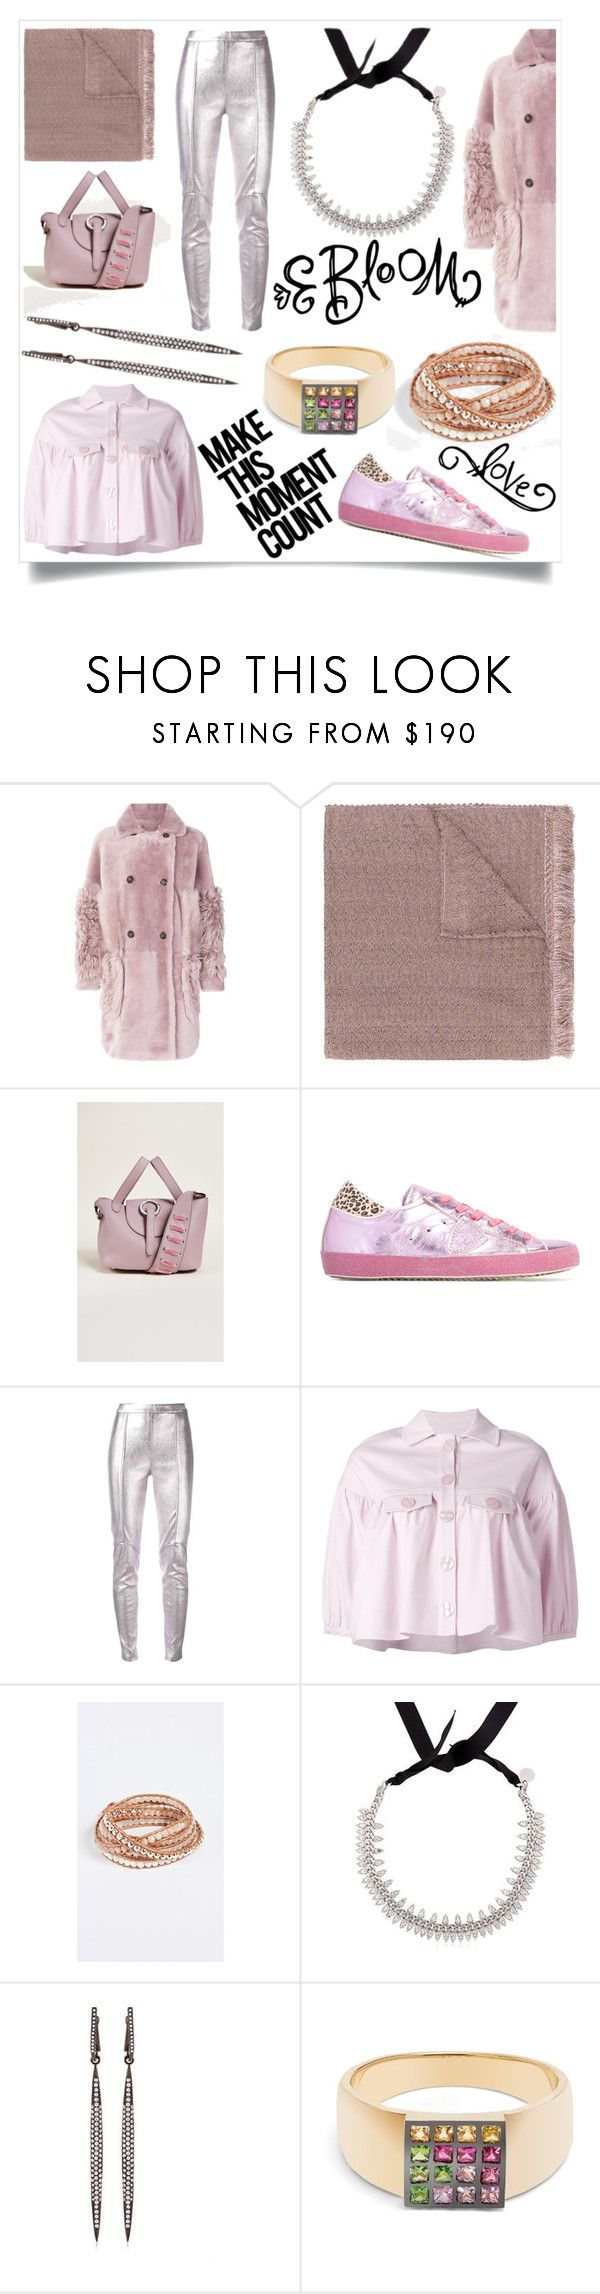 """United colours of polyvore"" by emmamegan-5678 ❤ liked on Polyvore featuring DESA 1972, Missoni, Meli Melo, Philippe Model, A.F. Vandevorst, VIVETTA, Chan Luu, Ellen Conde, Federica Tosi and Ileana Makri"